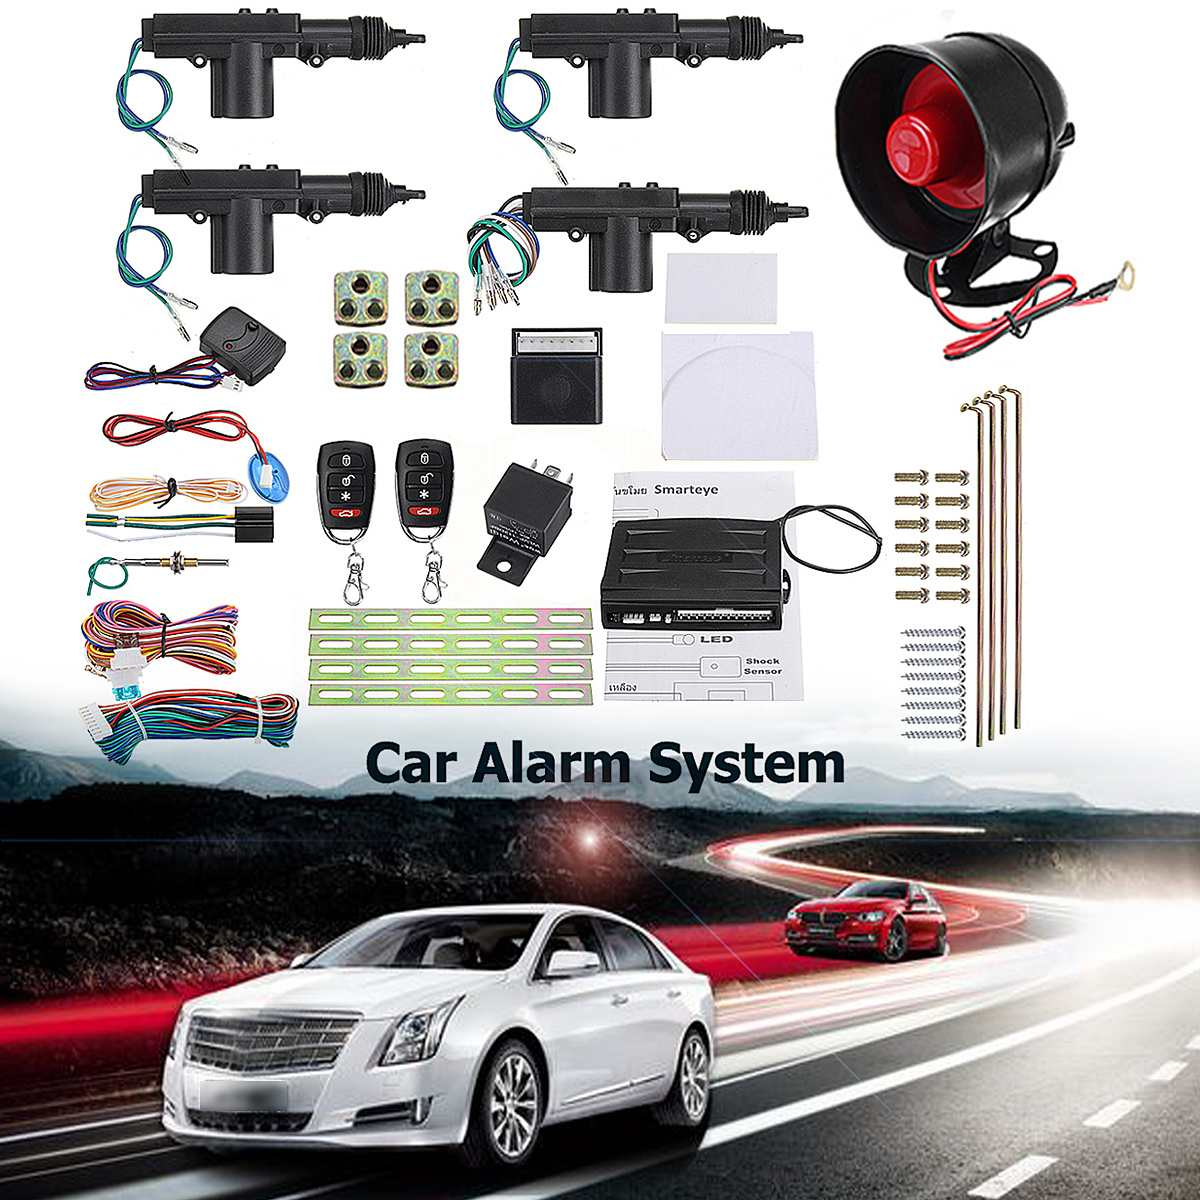 Set Of Alarm Systems Car Auto Remote Central Kit Door Lock Locking Vehicle Keyless Entry System With Remote Controllers 2/4 Door